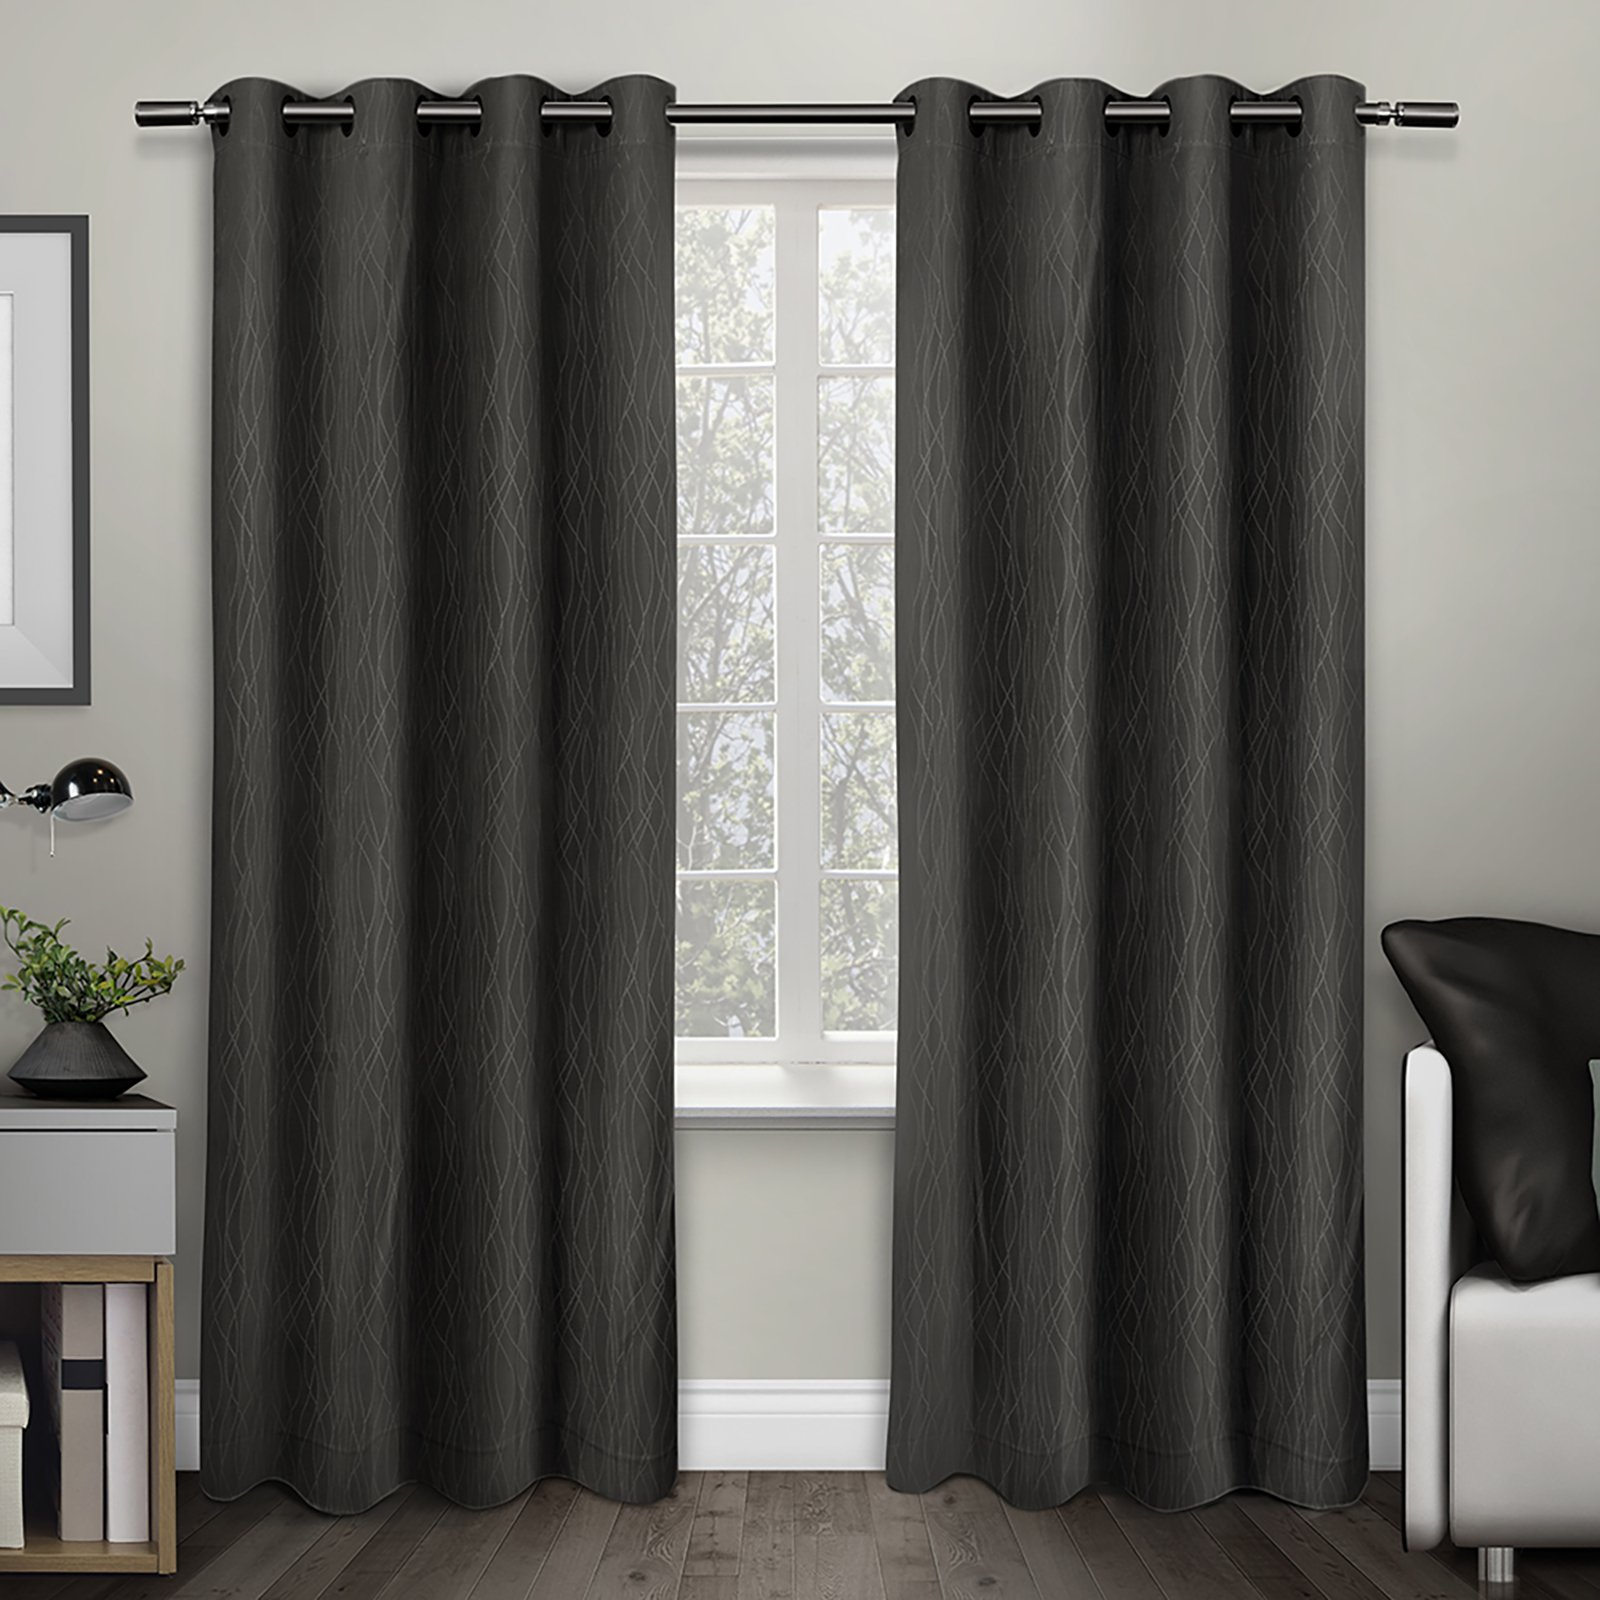 Thermal Textured Linen Grommet Top Curtain Panel Pairs Regarding Most Up To Date Exclusive Home Crete Textured Jacquard Thermal Window Curtain Panel Pair With Grommet Top (View 9 of 20)